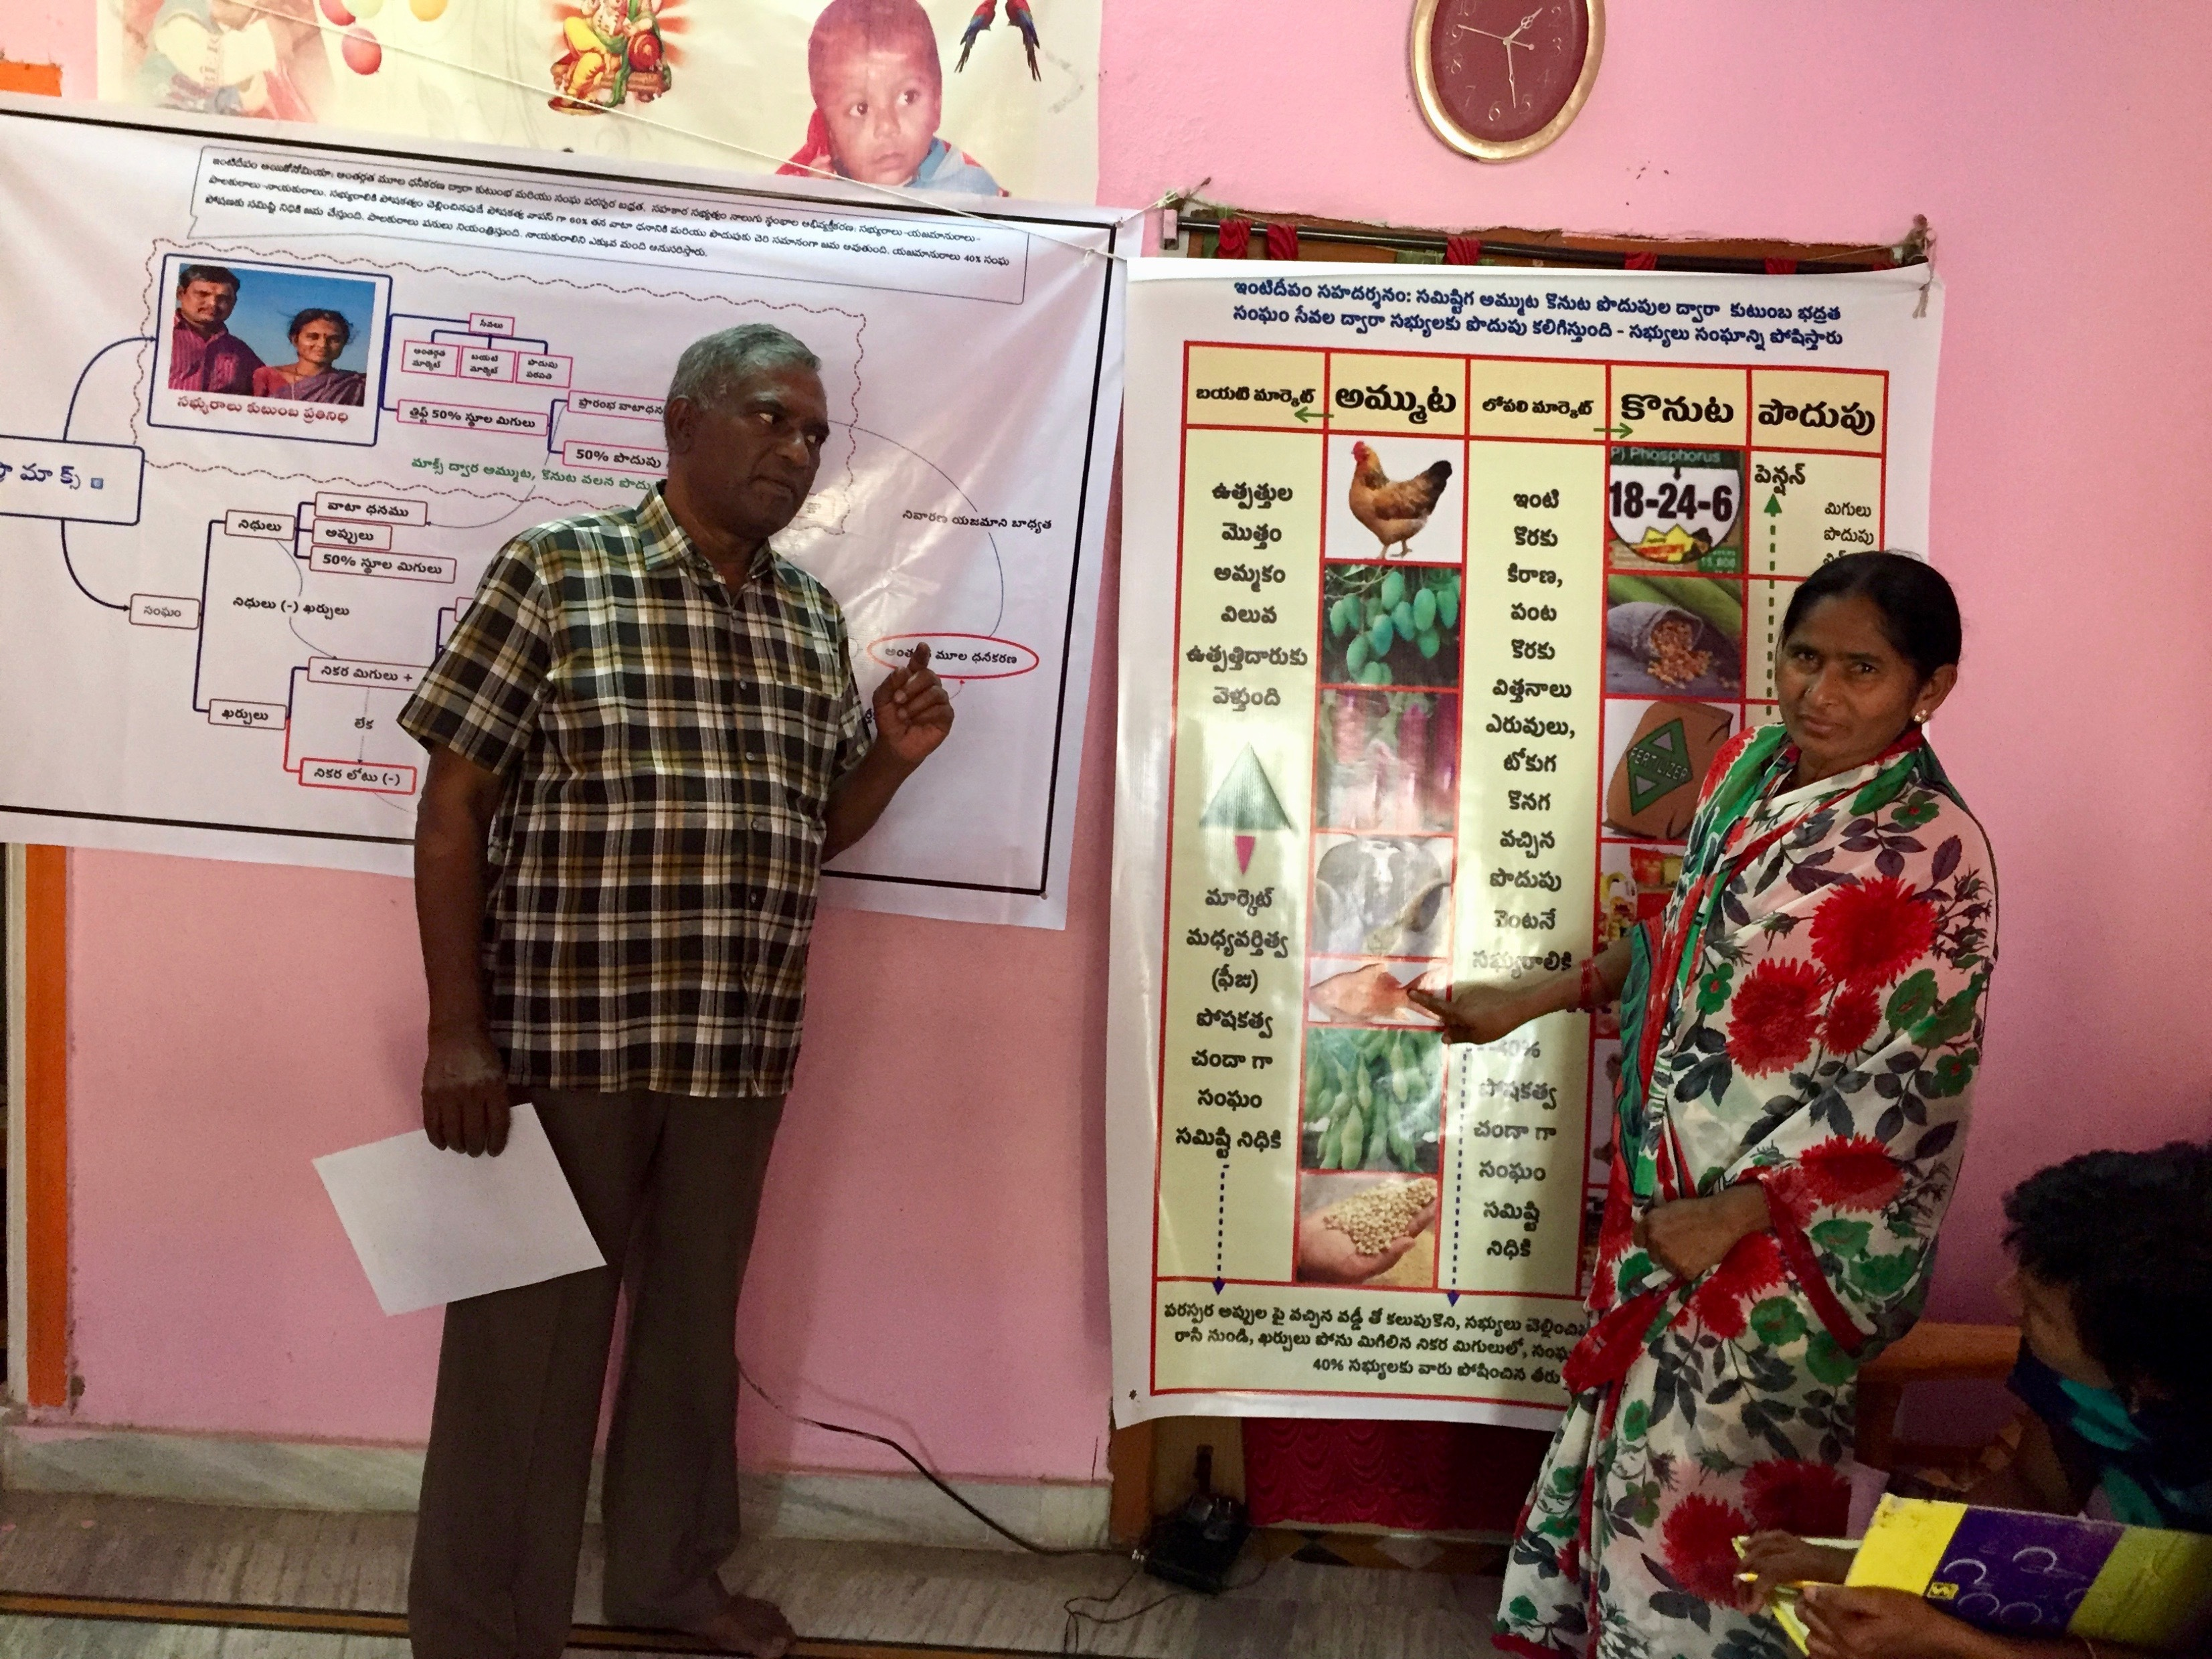 Imtiyaz Begum, head of the Boregaon village cooperative, explains with facilitator Samson Nakkala the process of selling crops through a women's run agricultural cooperative